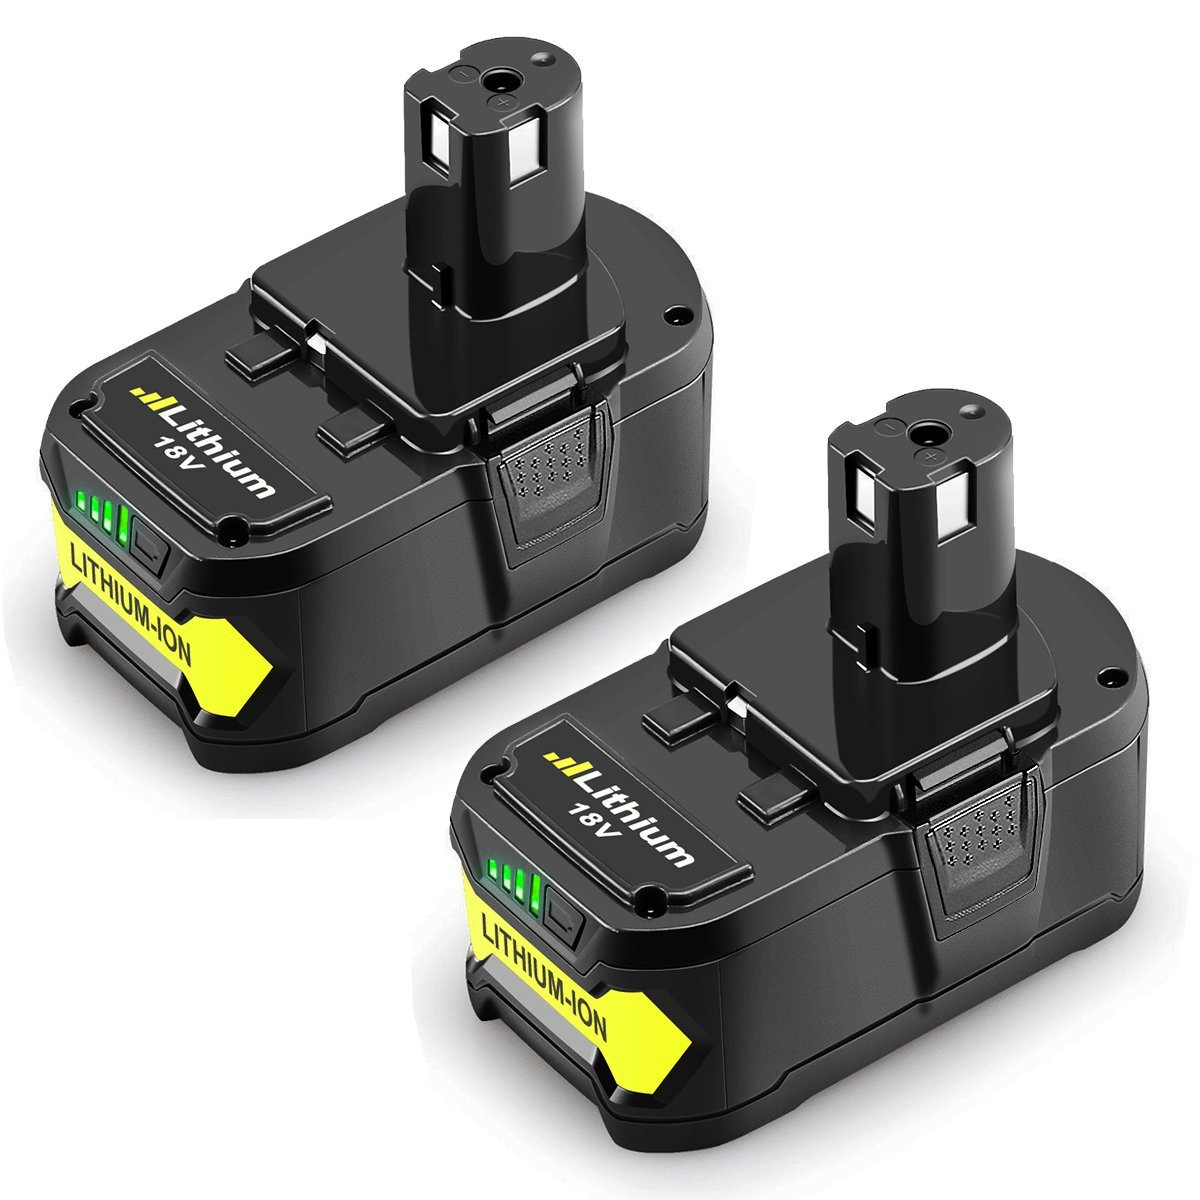 Powilling 2Pack 5.0Ah 18V Replacement Battery for Ryobi 18V Lithium Battery P102 P103 P105 P107 P108 P109 Ryobi ONE+ Cordless Tool by Powilling